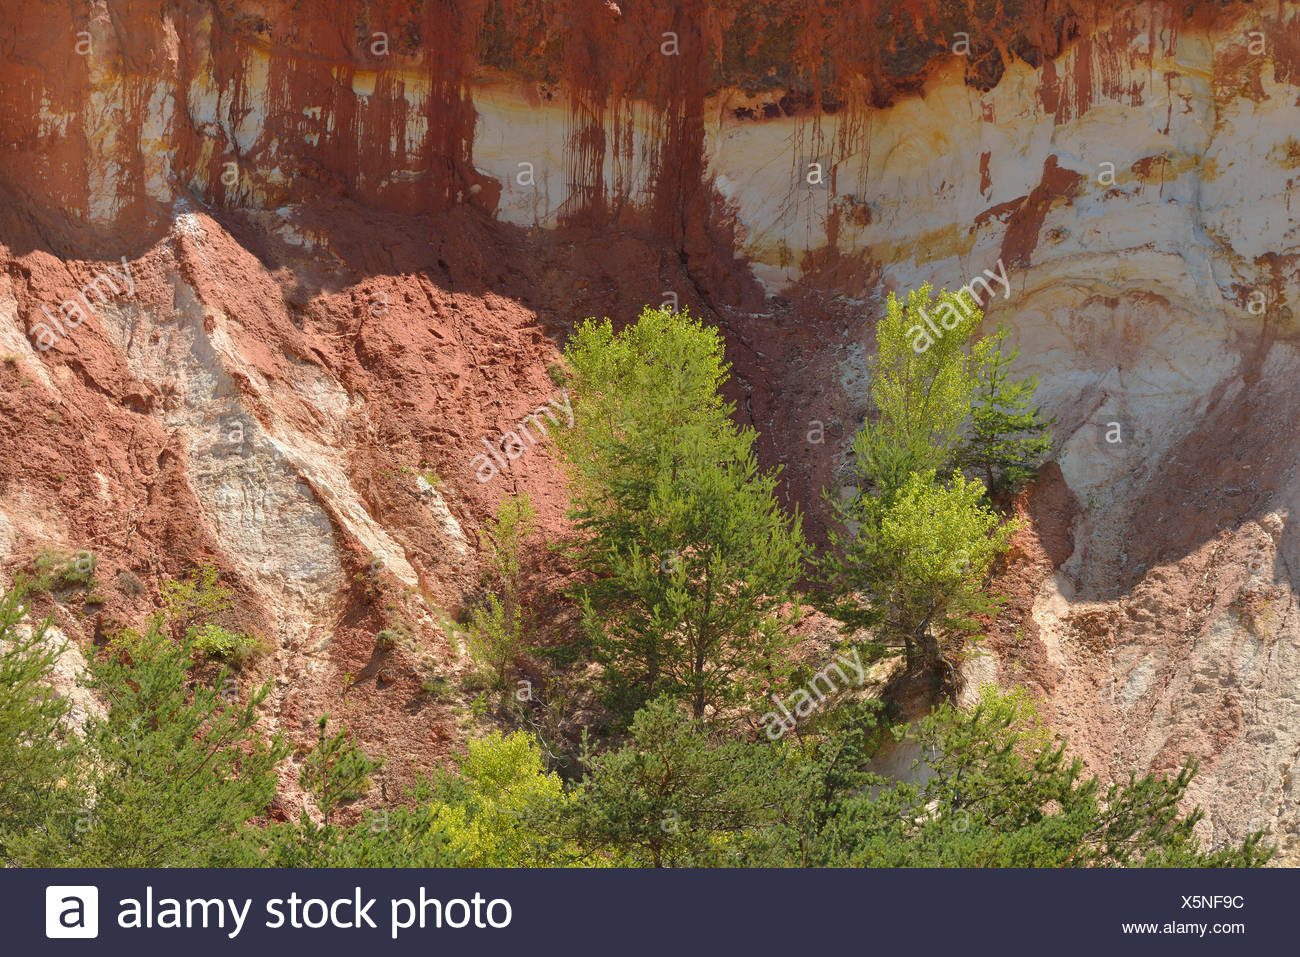 Europe, Roussillon, Vaucluse, Provence, France, ochre, rock, red, cliff, nature - Stock Image